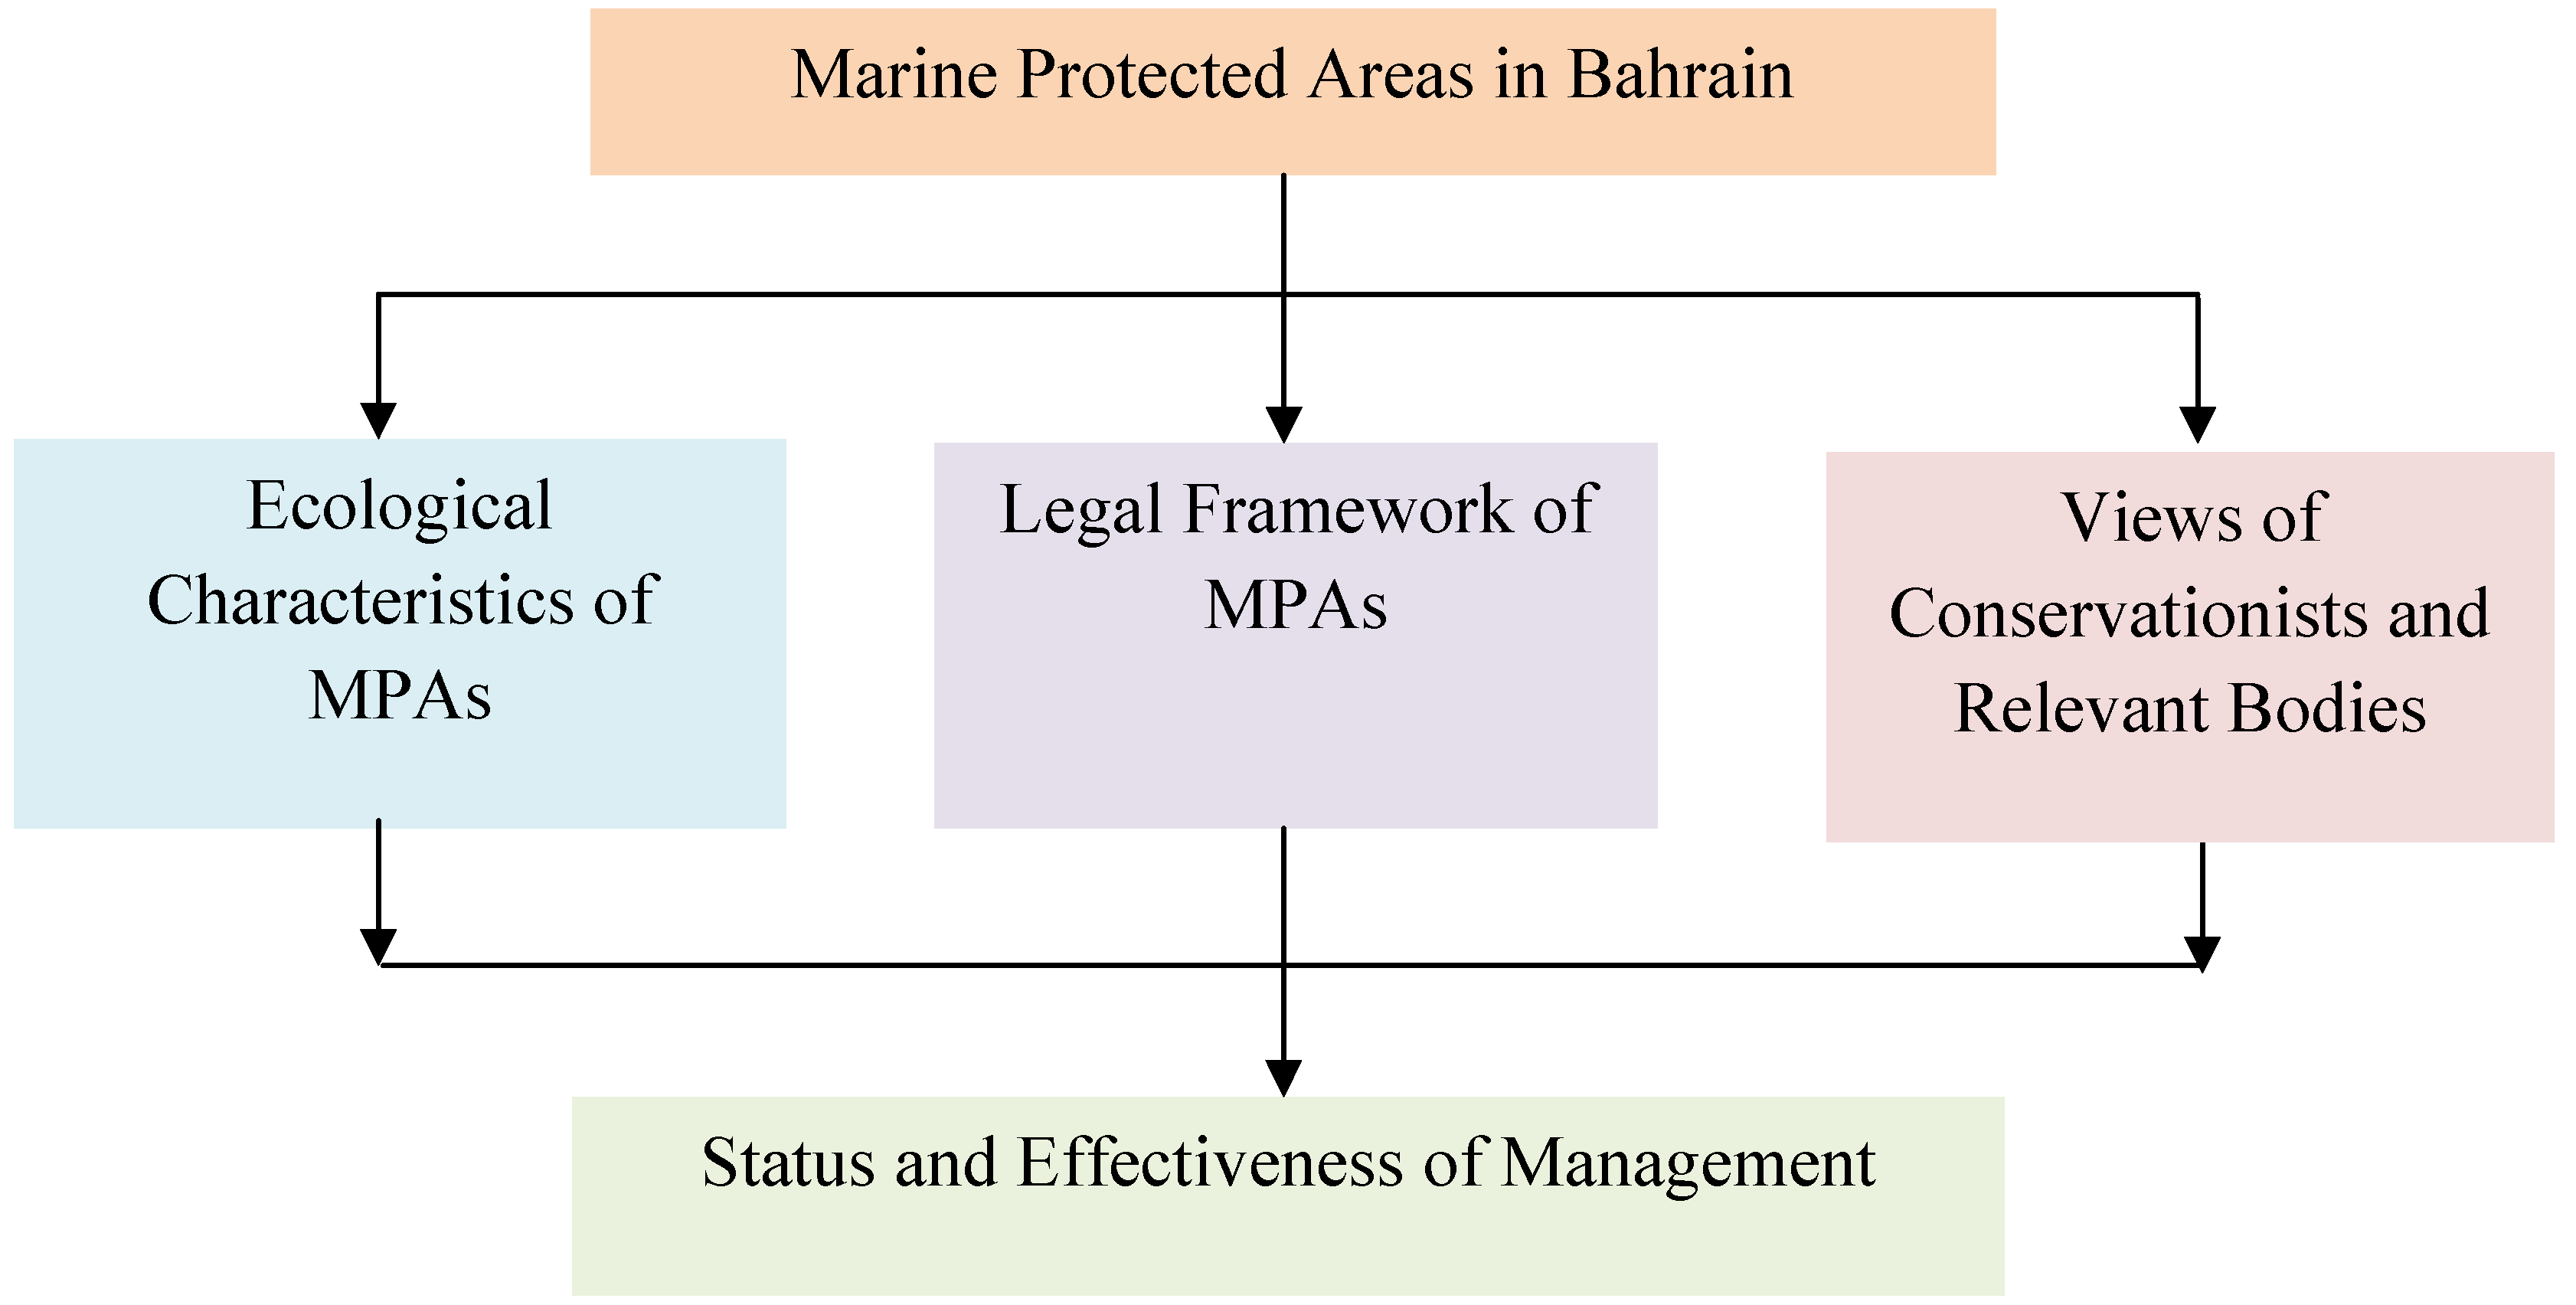 Management of Marine Protected Zones – Case Study of Bahrain